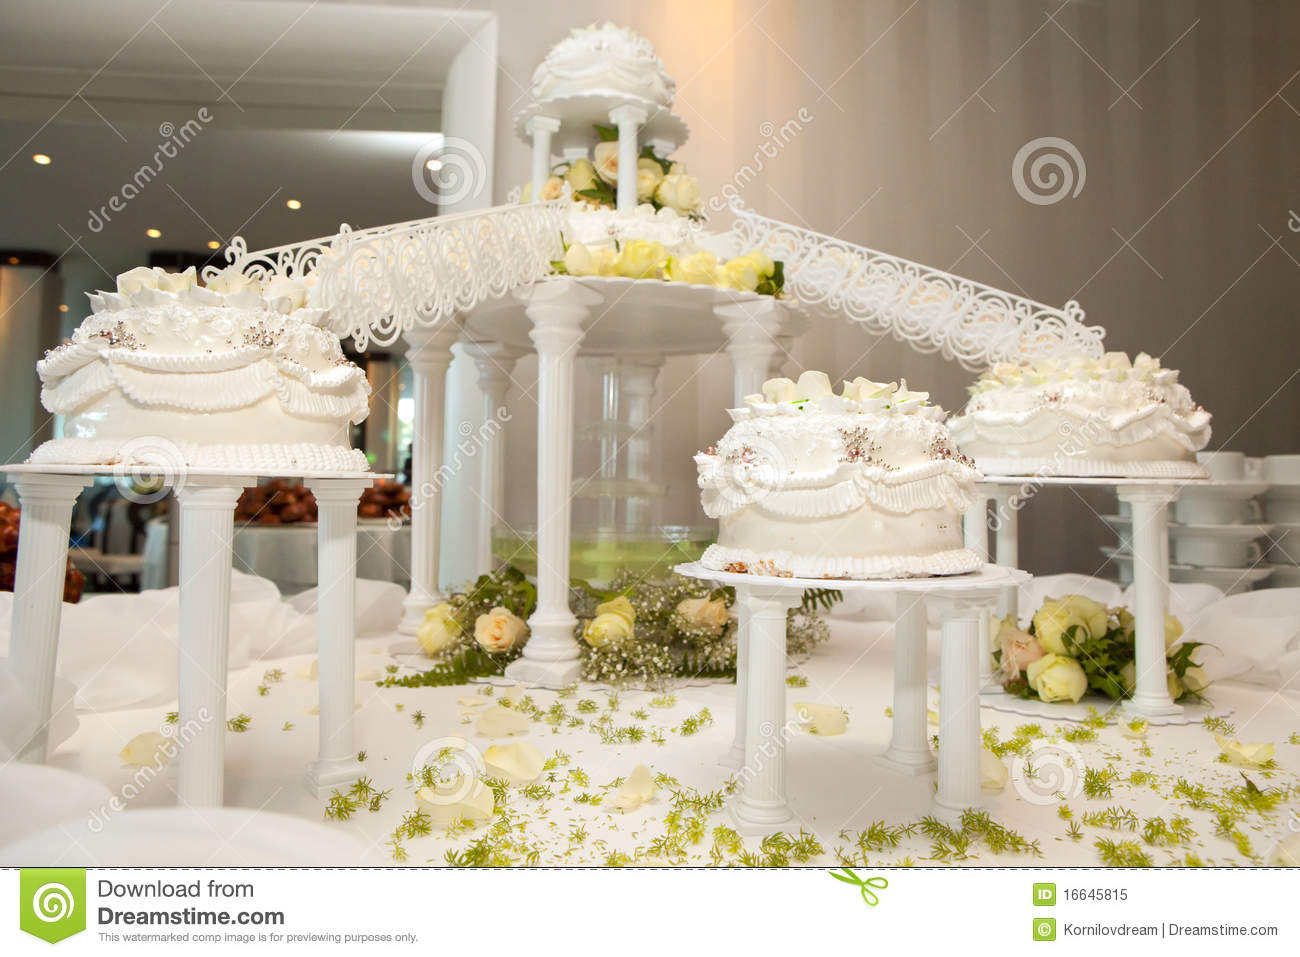 El Dorado Wedding Cakes